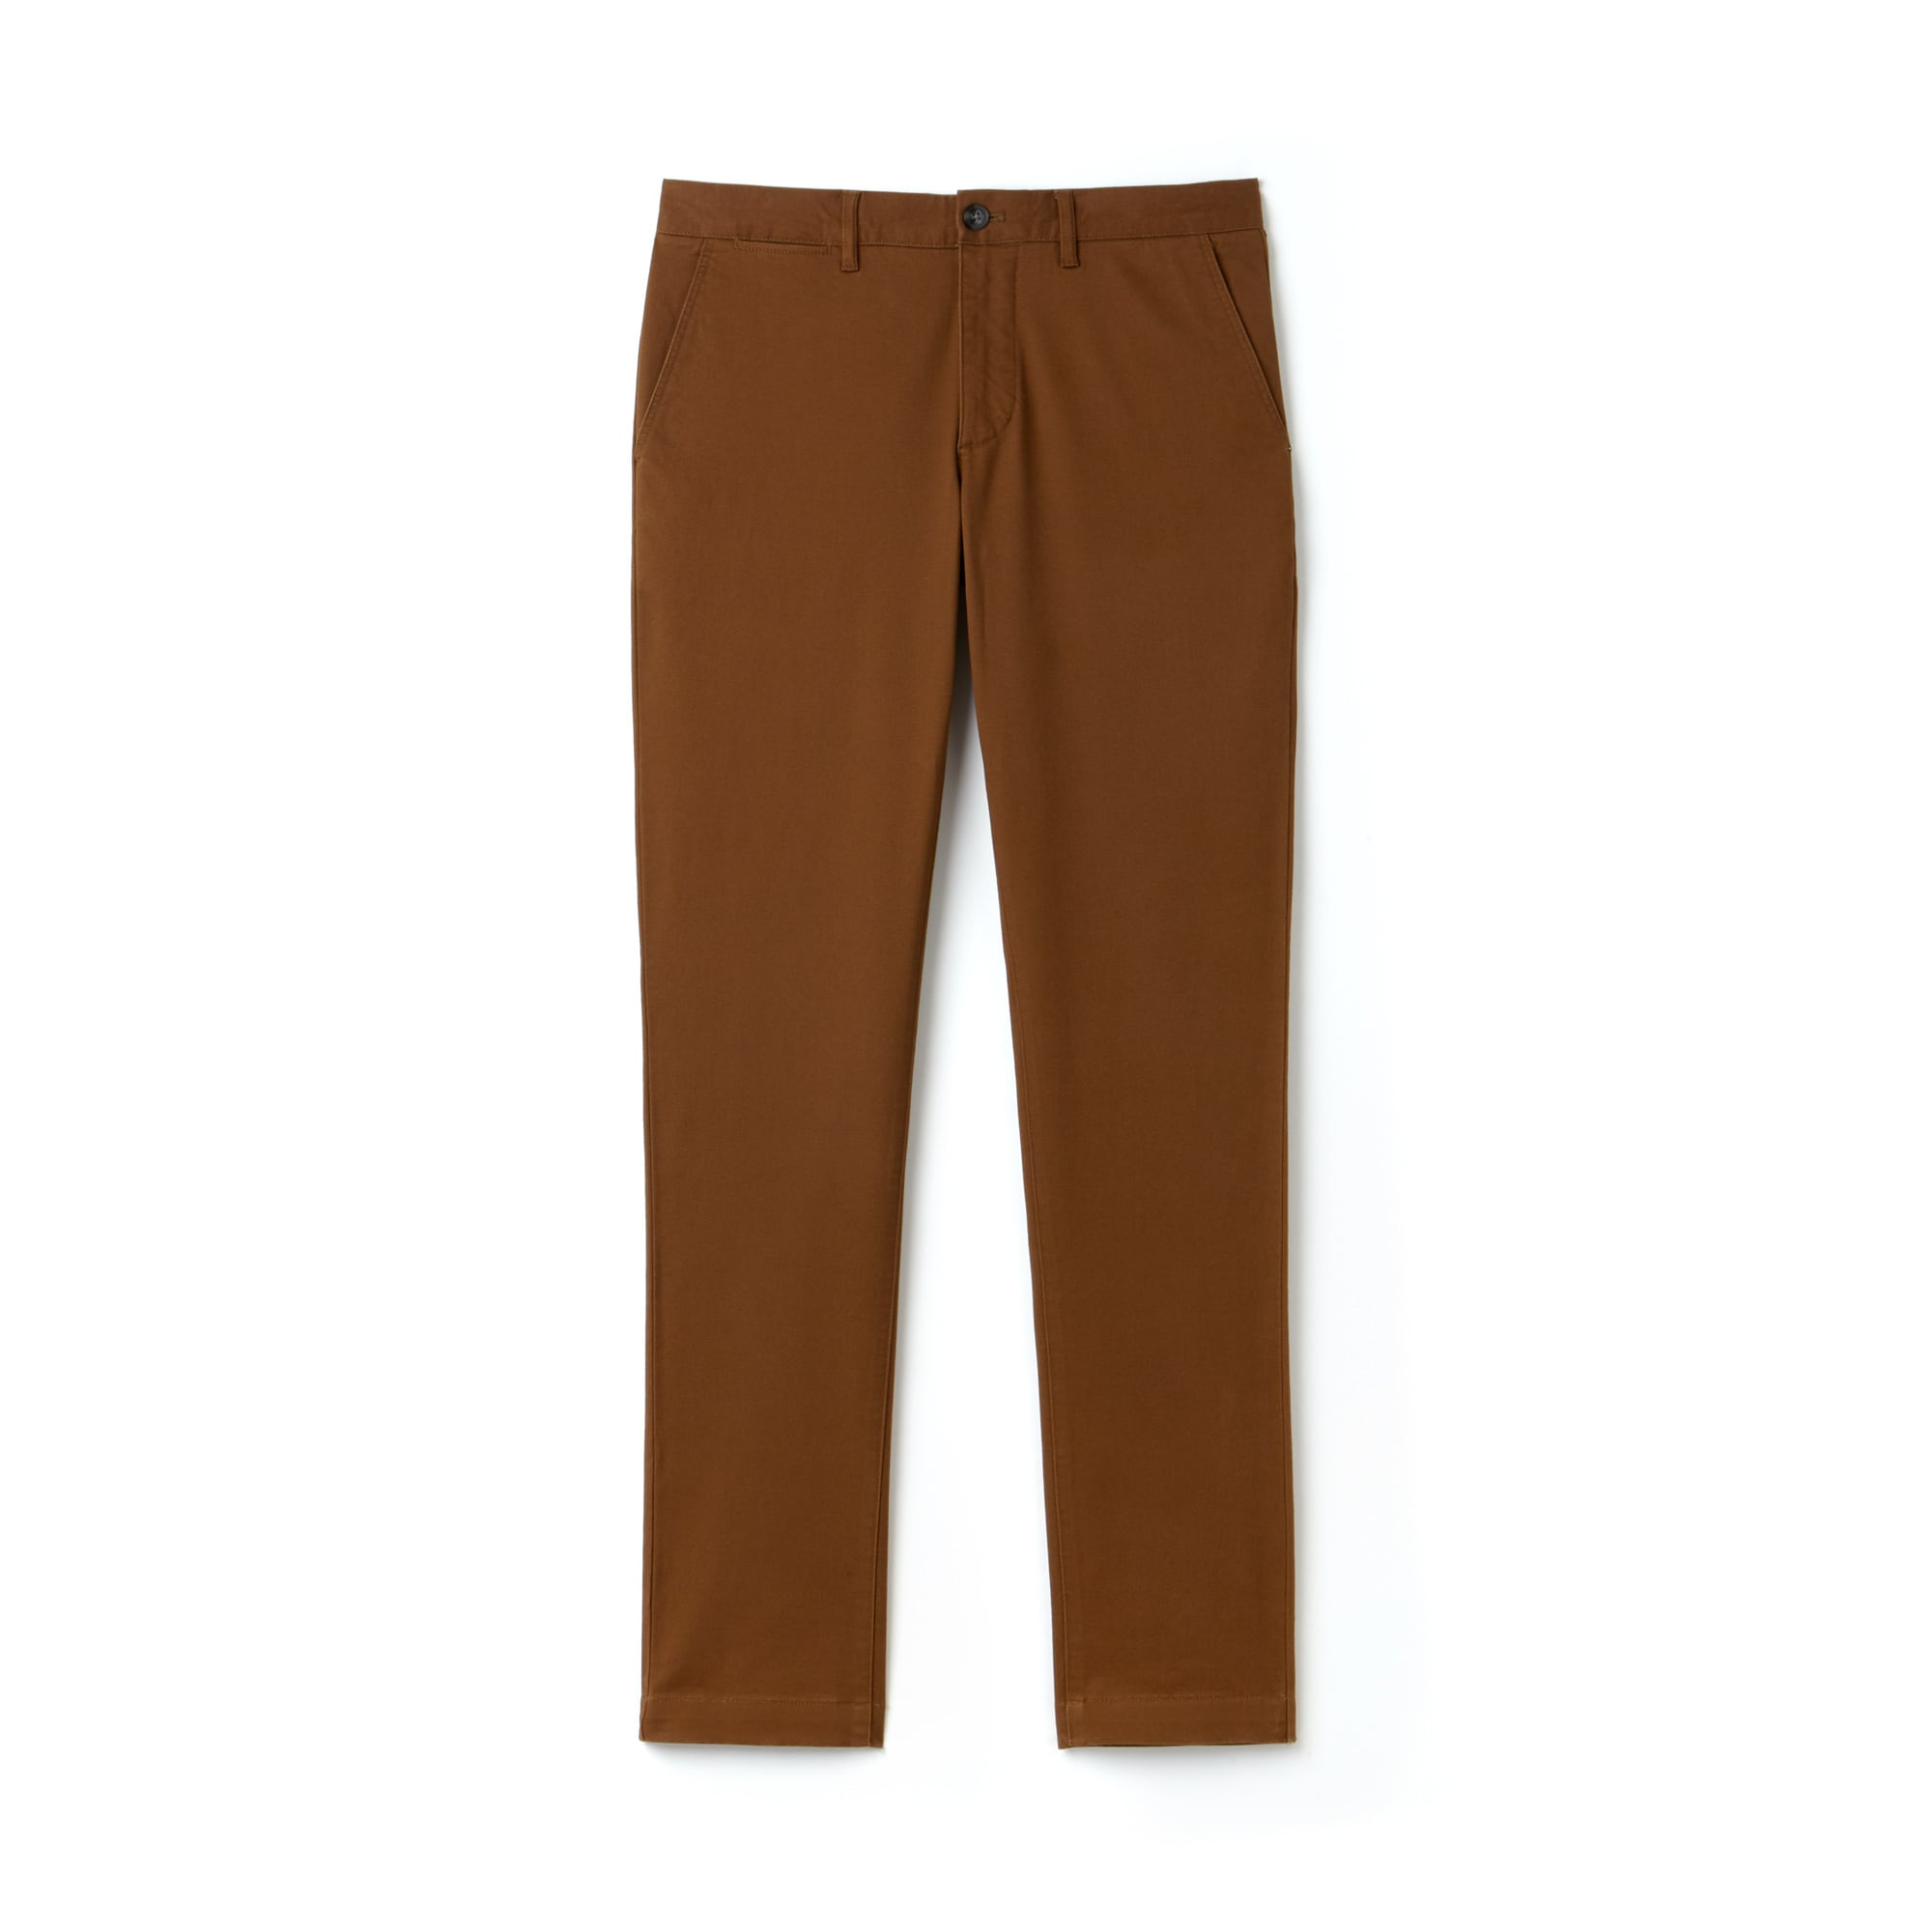 Men's Slim Fit Stretch Gabardine Chino Pants